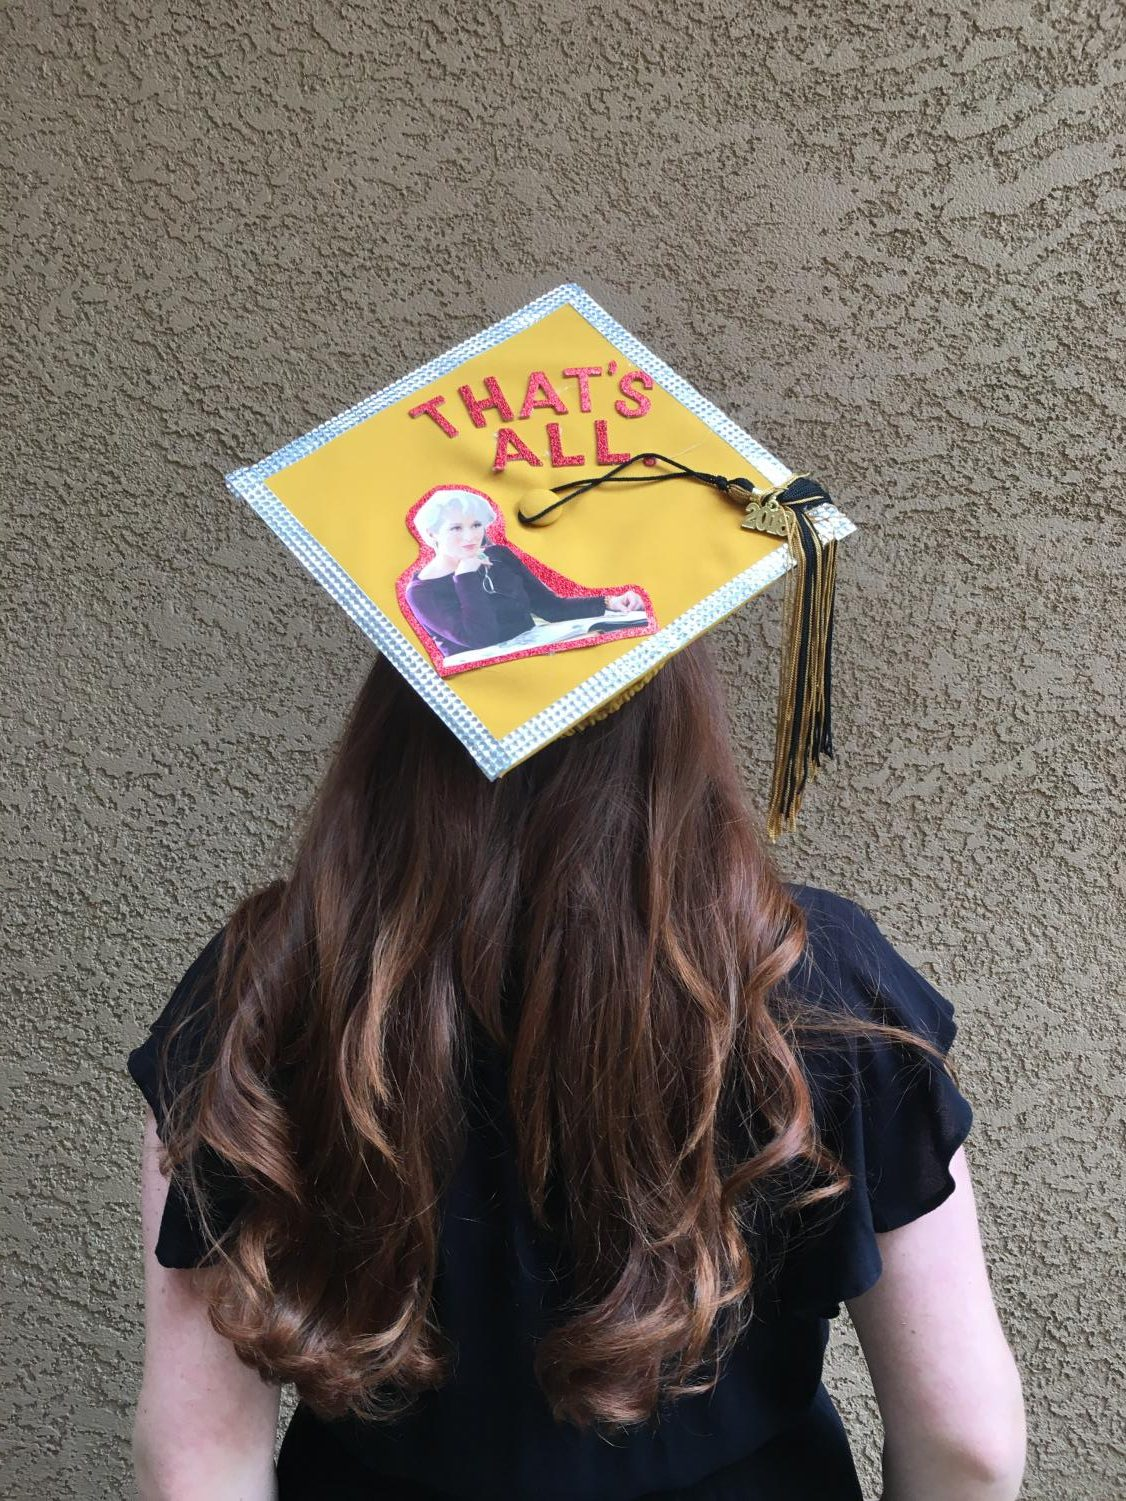 Ashley Lazar's graduation cap with a quote from Meryl Streep in